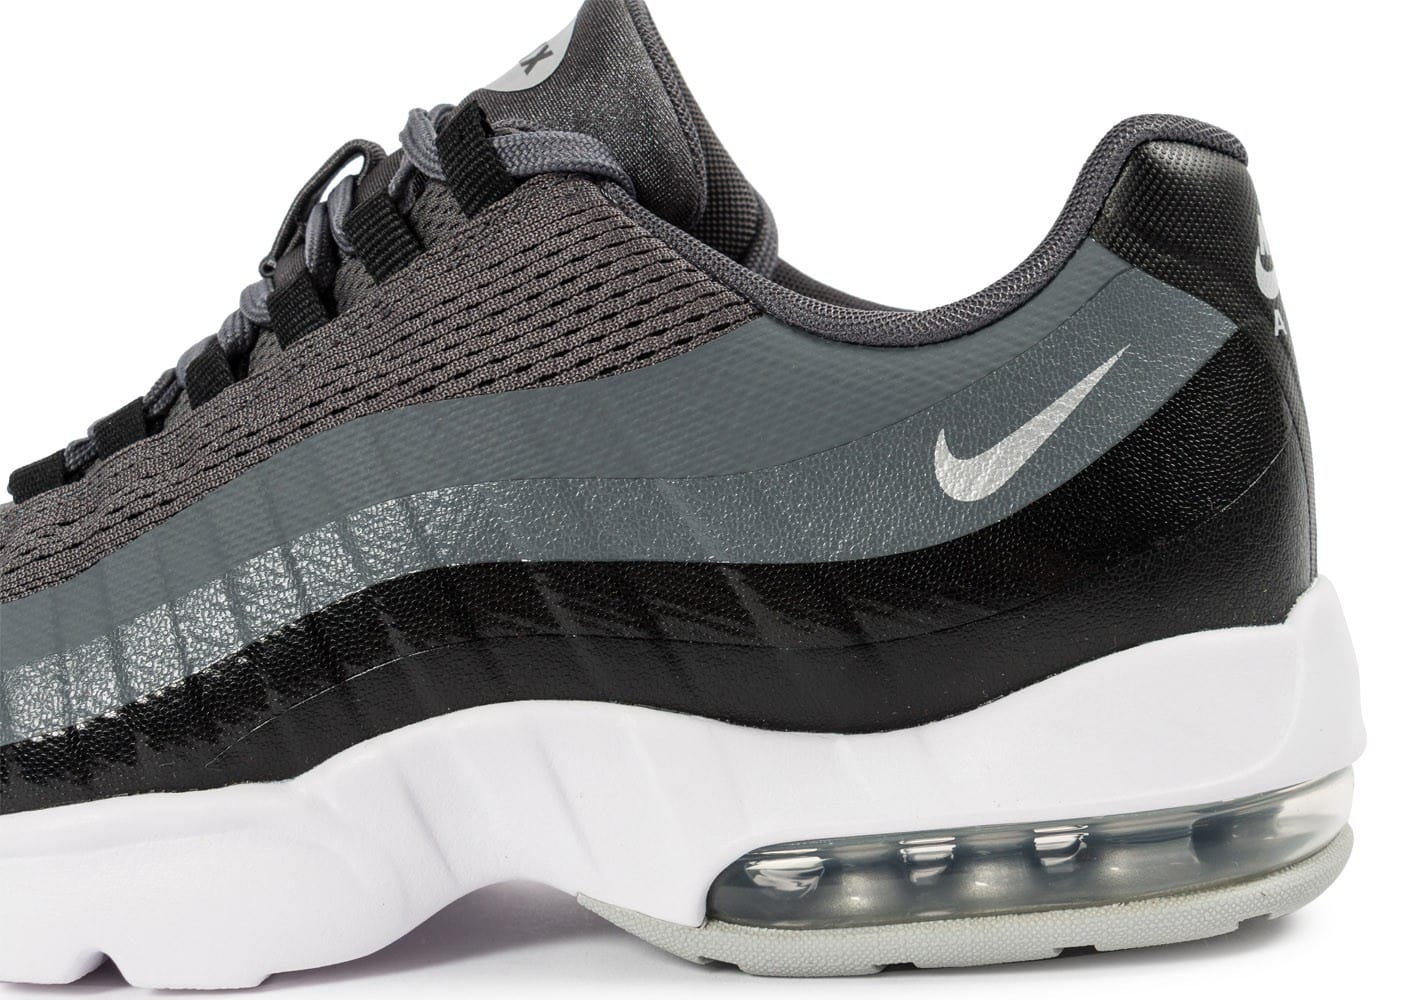 Grise Nike Ultra Max Chaussures 95 Air Chausport xIBPwqpI